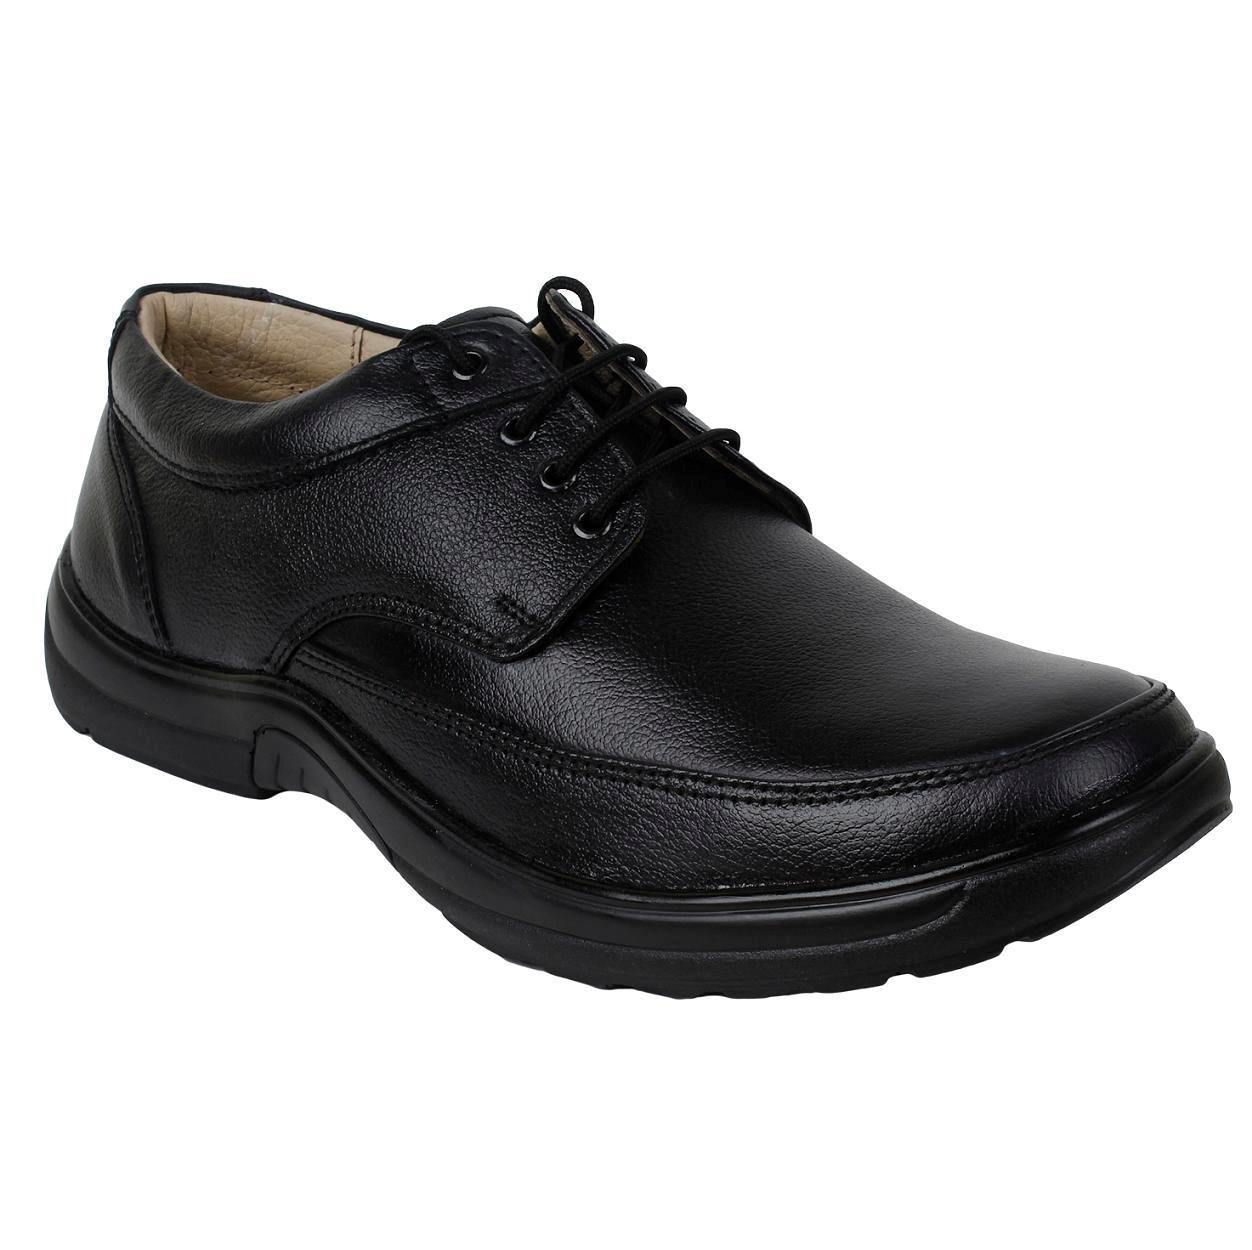 SeeandWear Formal Shoes For Men. Genuine Leather Black Office Wear Shoes.